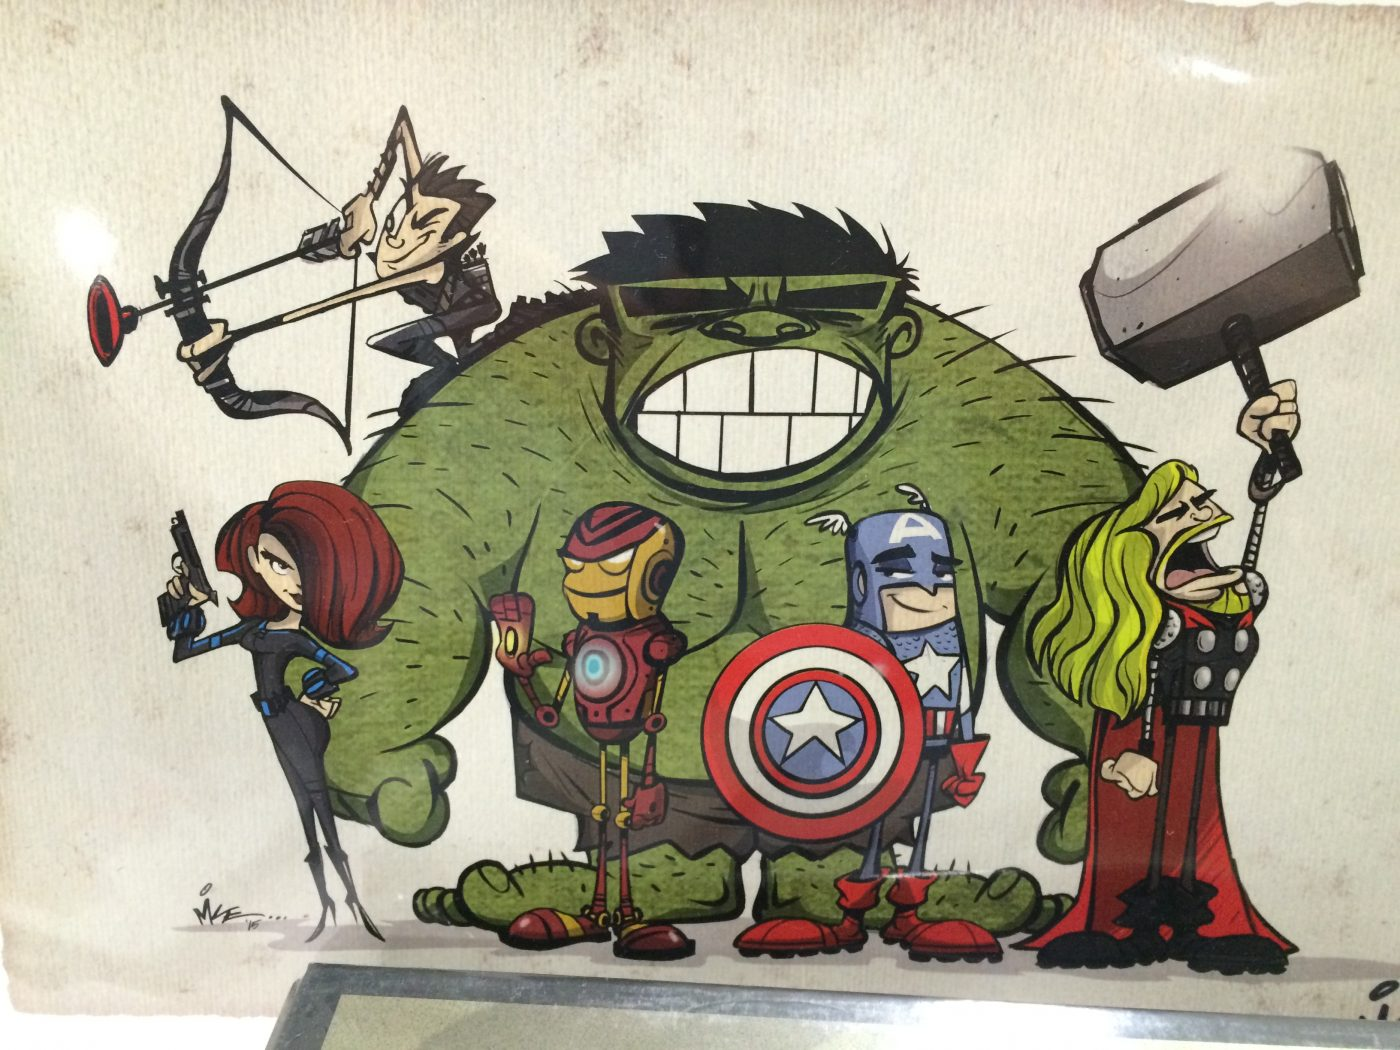 Boston Comic Con 2015: The Best Art from the Convention Floor!